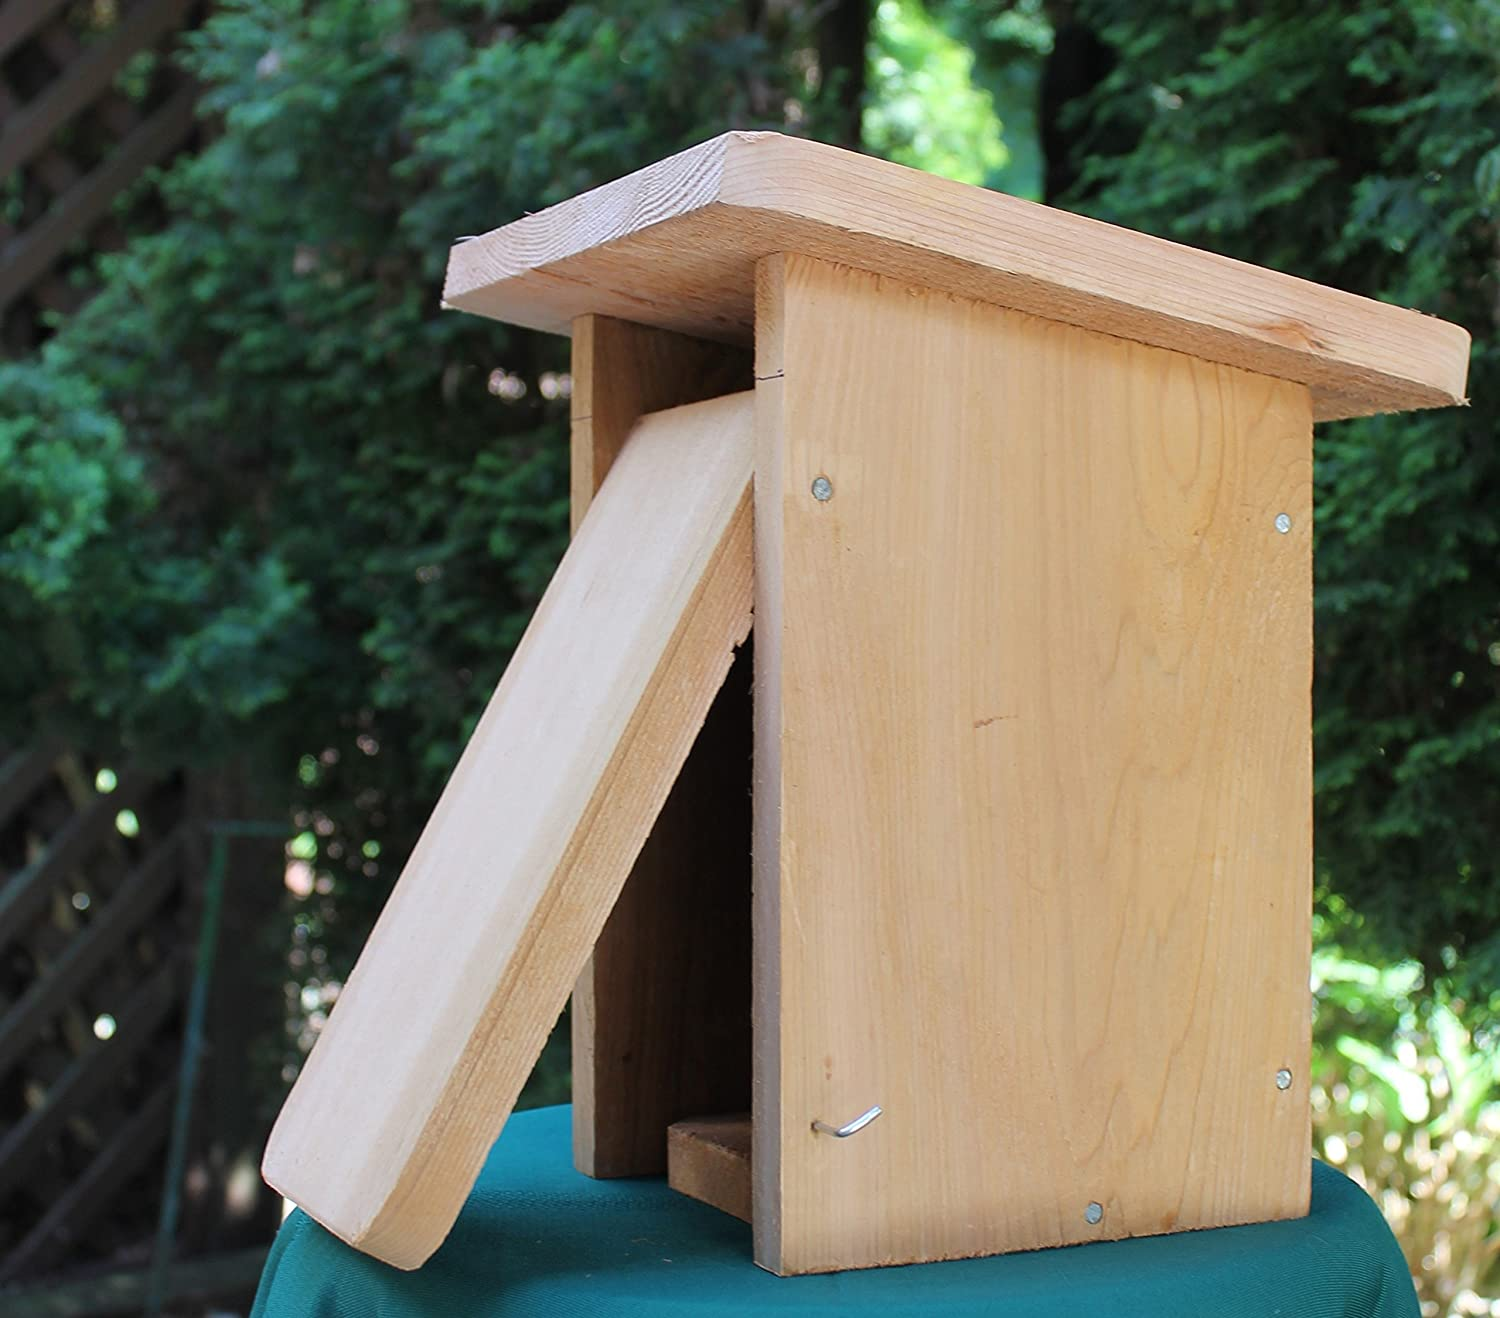 Bluebird House Kit by I Can Build It - Attract Bluebirds to Nest in your Yard